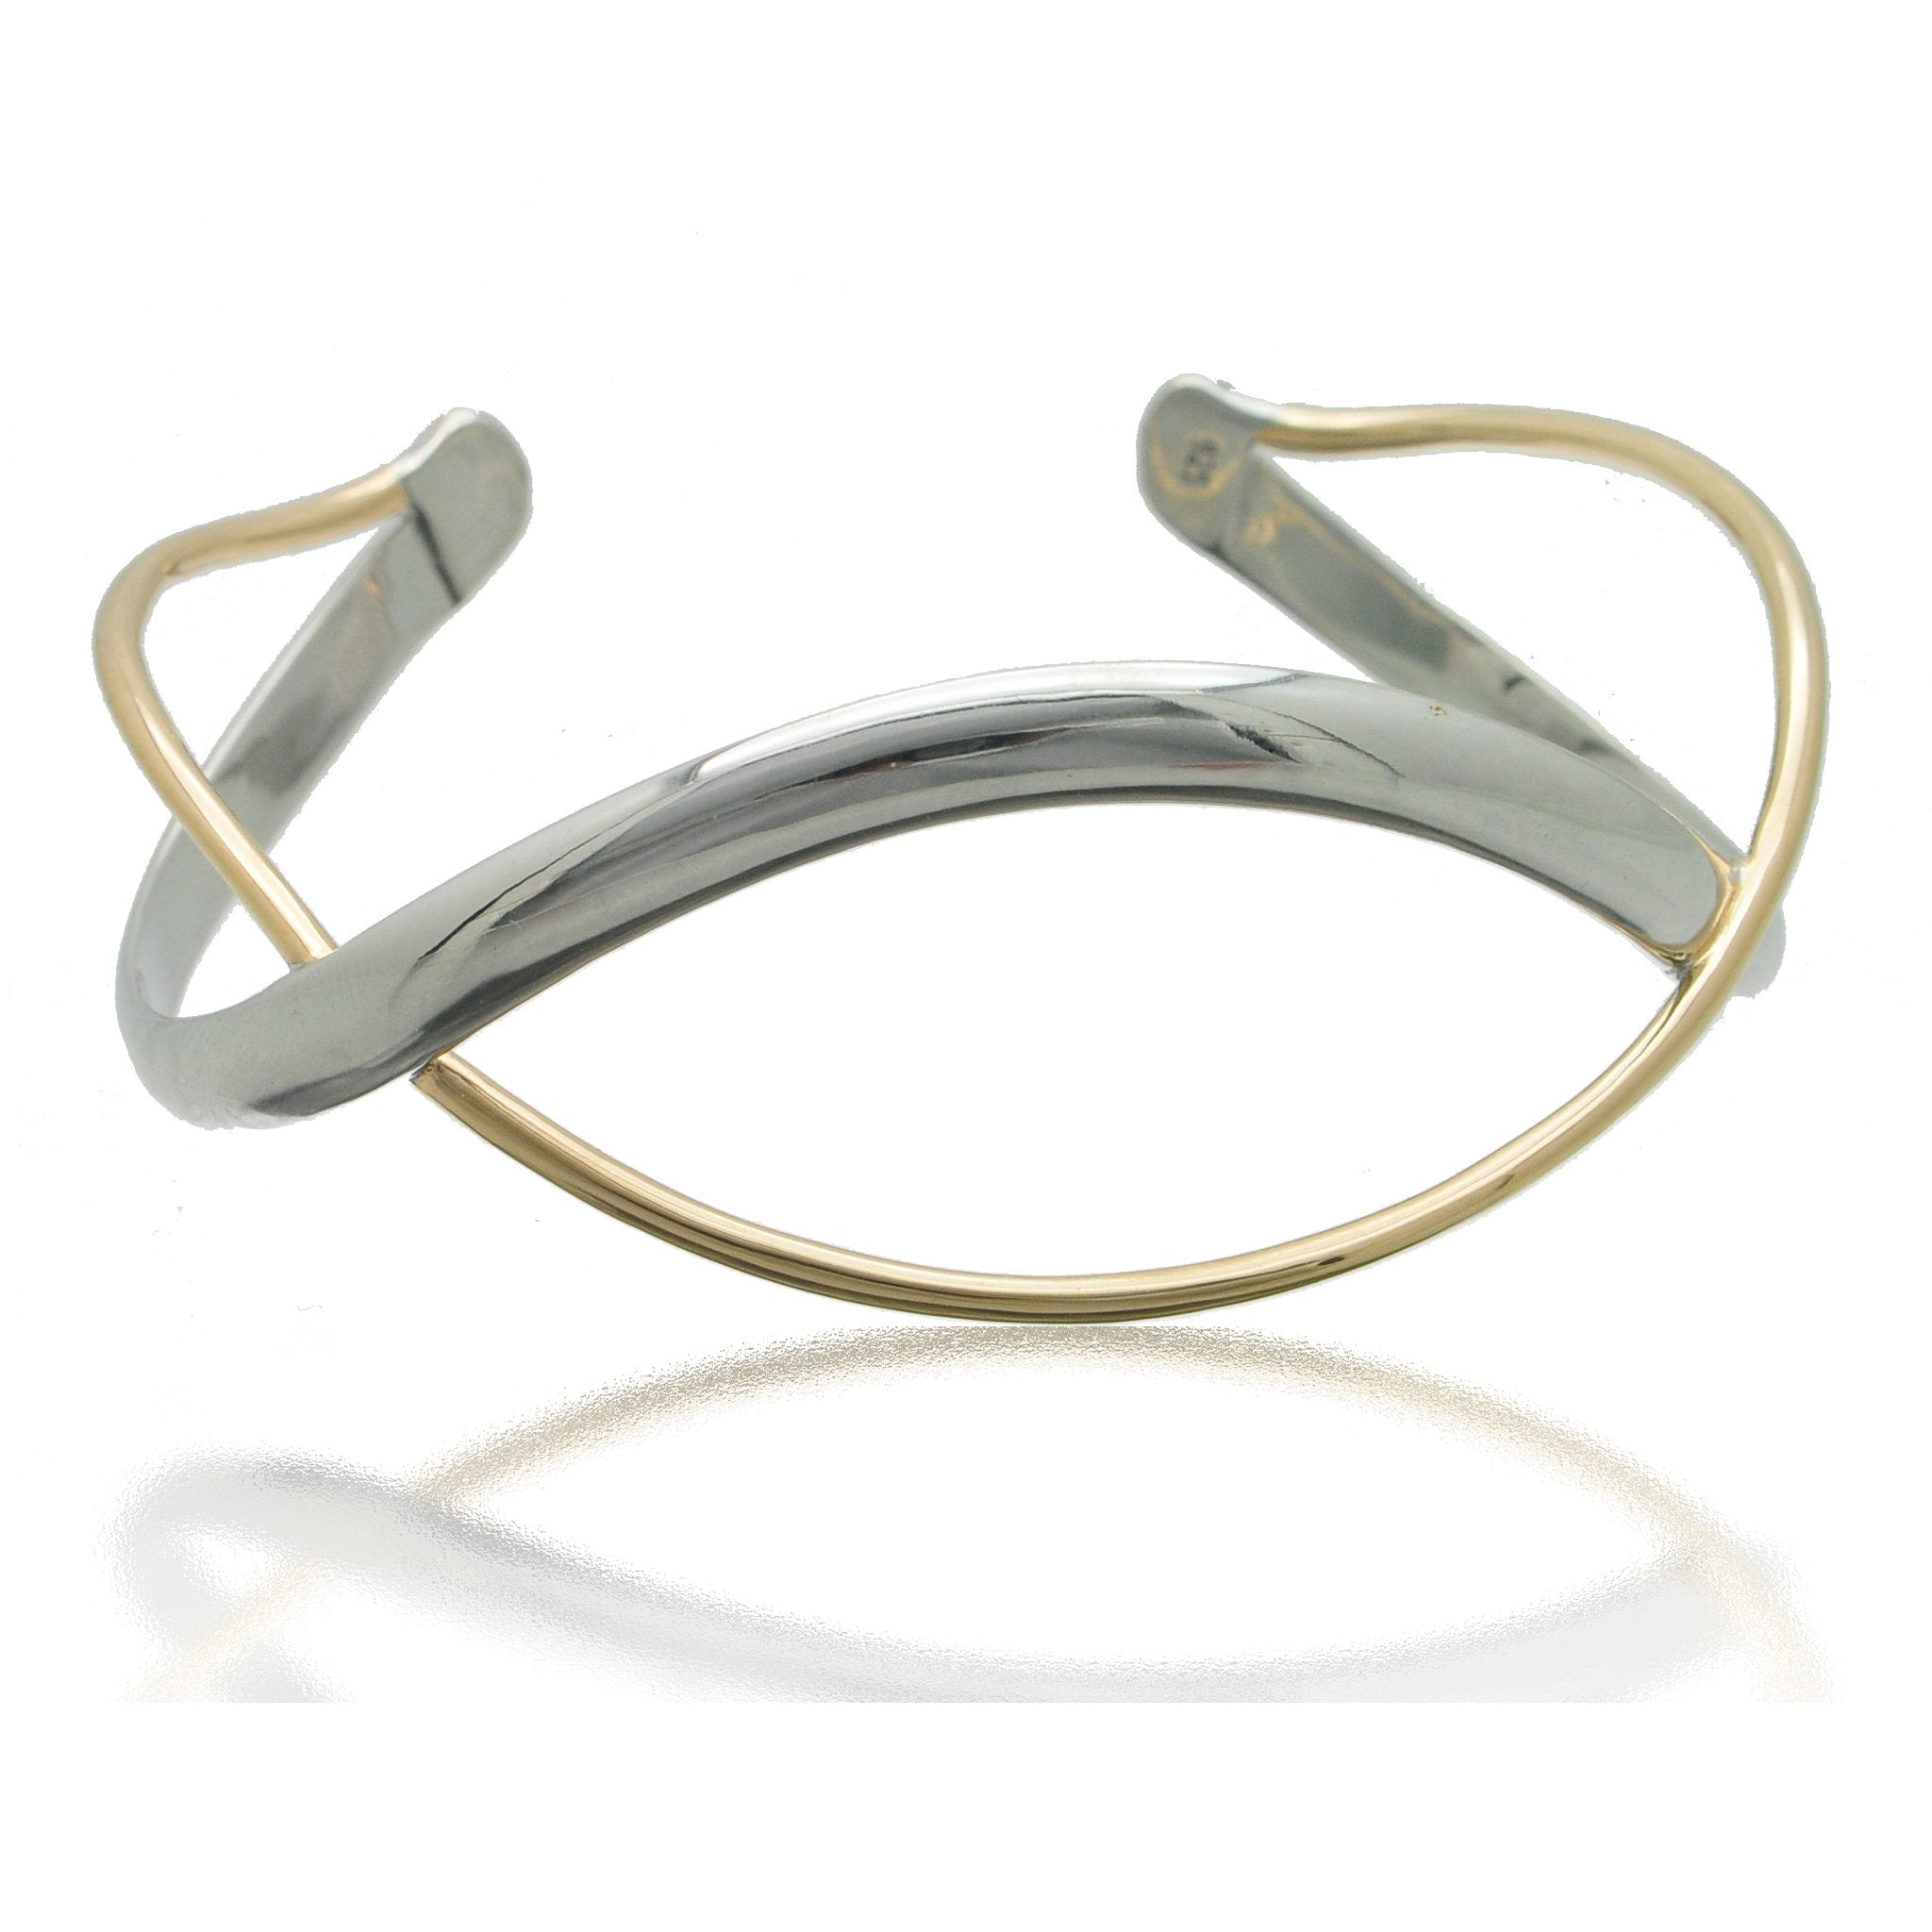 Contemporary Interlocking Silver and Gold Cuff Bracelet